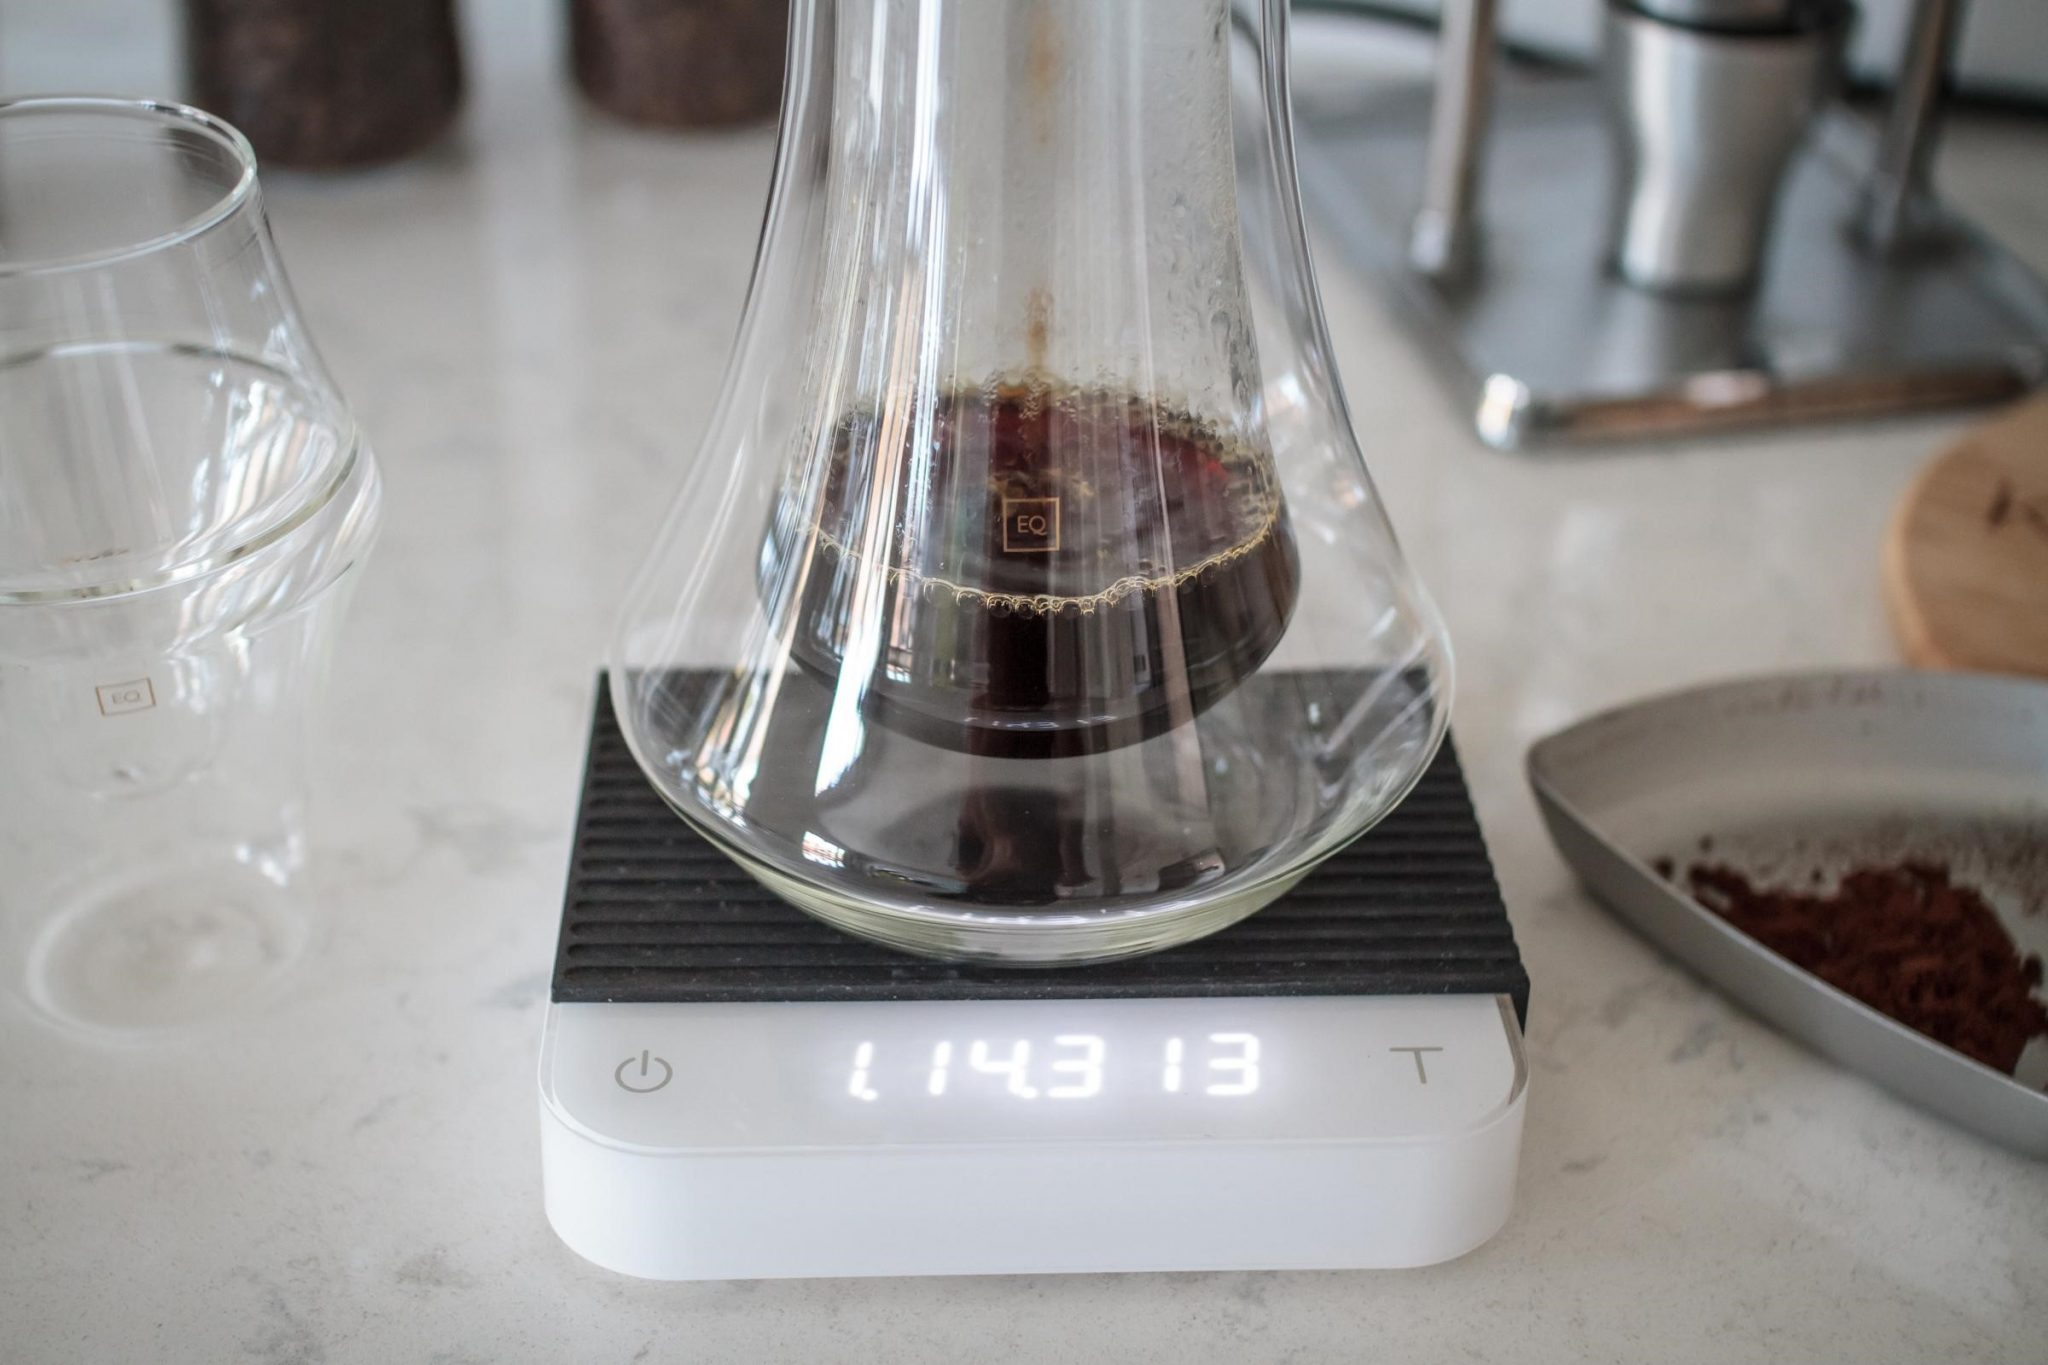 Brewing coffee on a scale to have better coffee